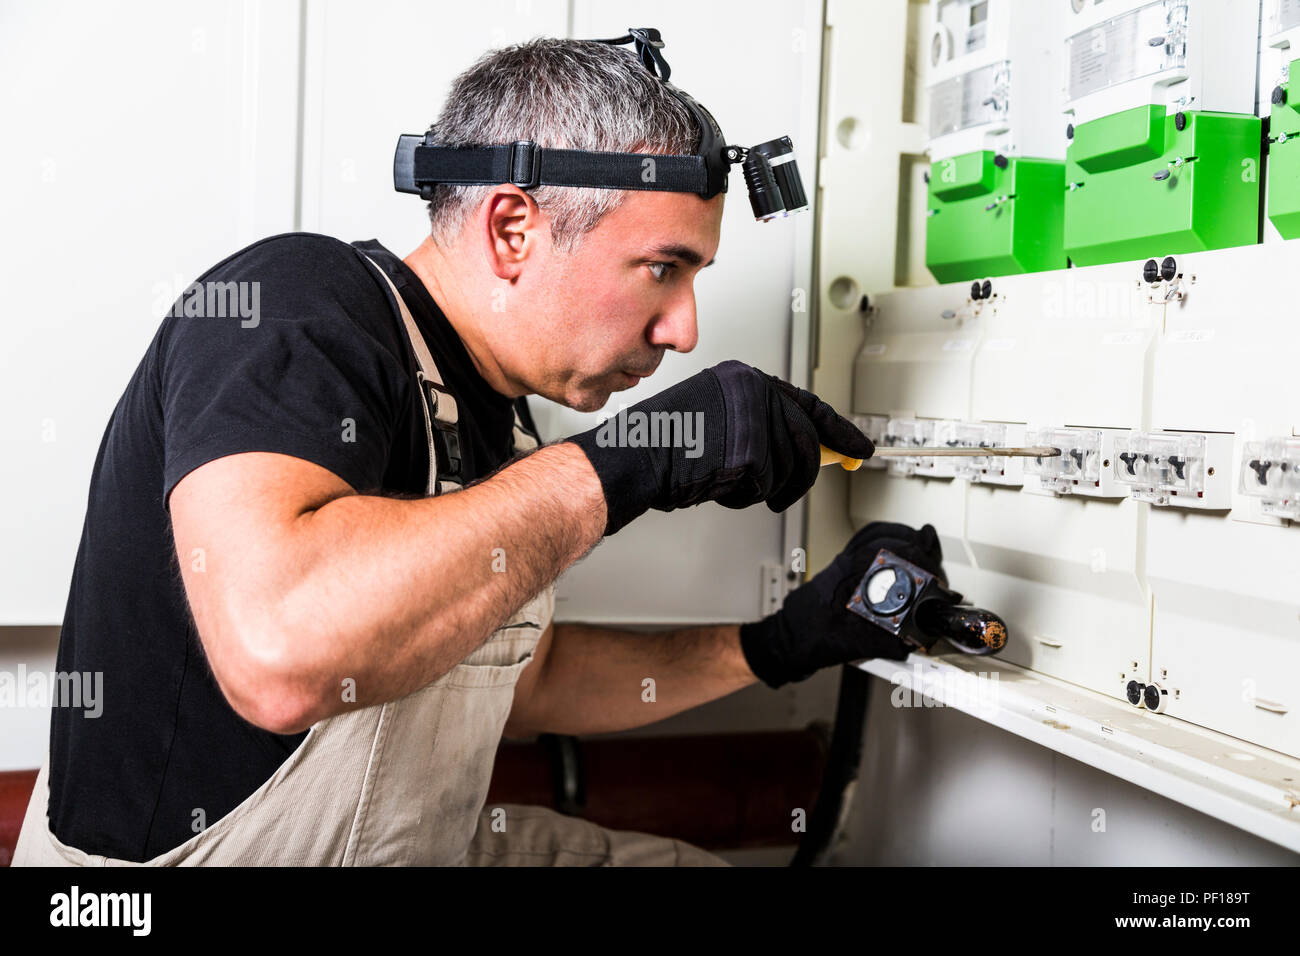 Electrician repairs and measures fuse box or switch box - Stock Image